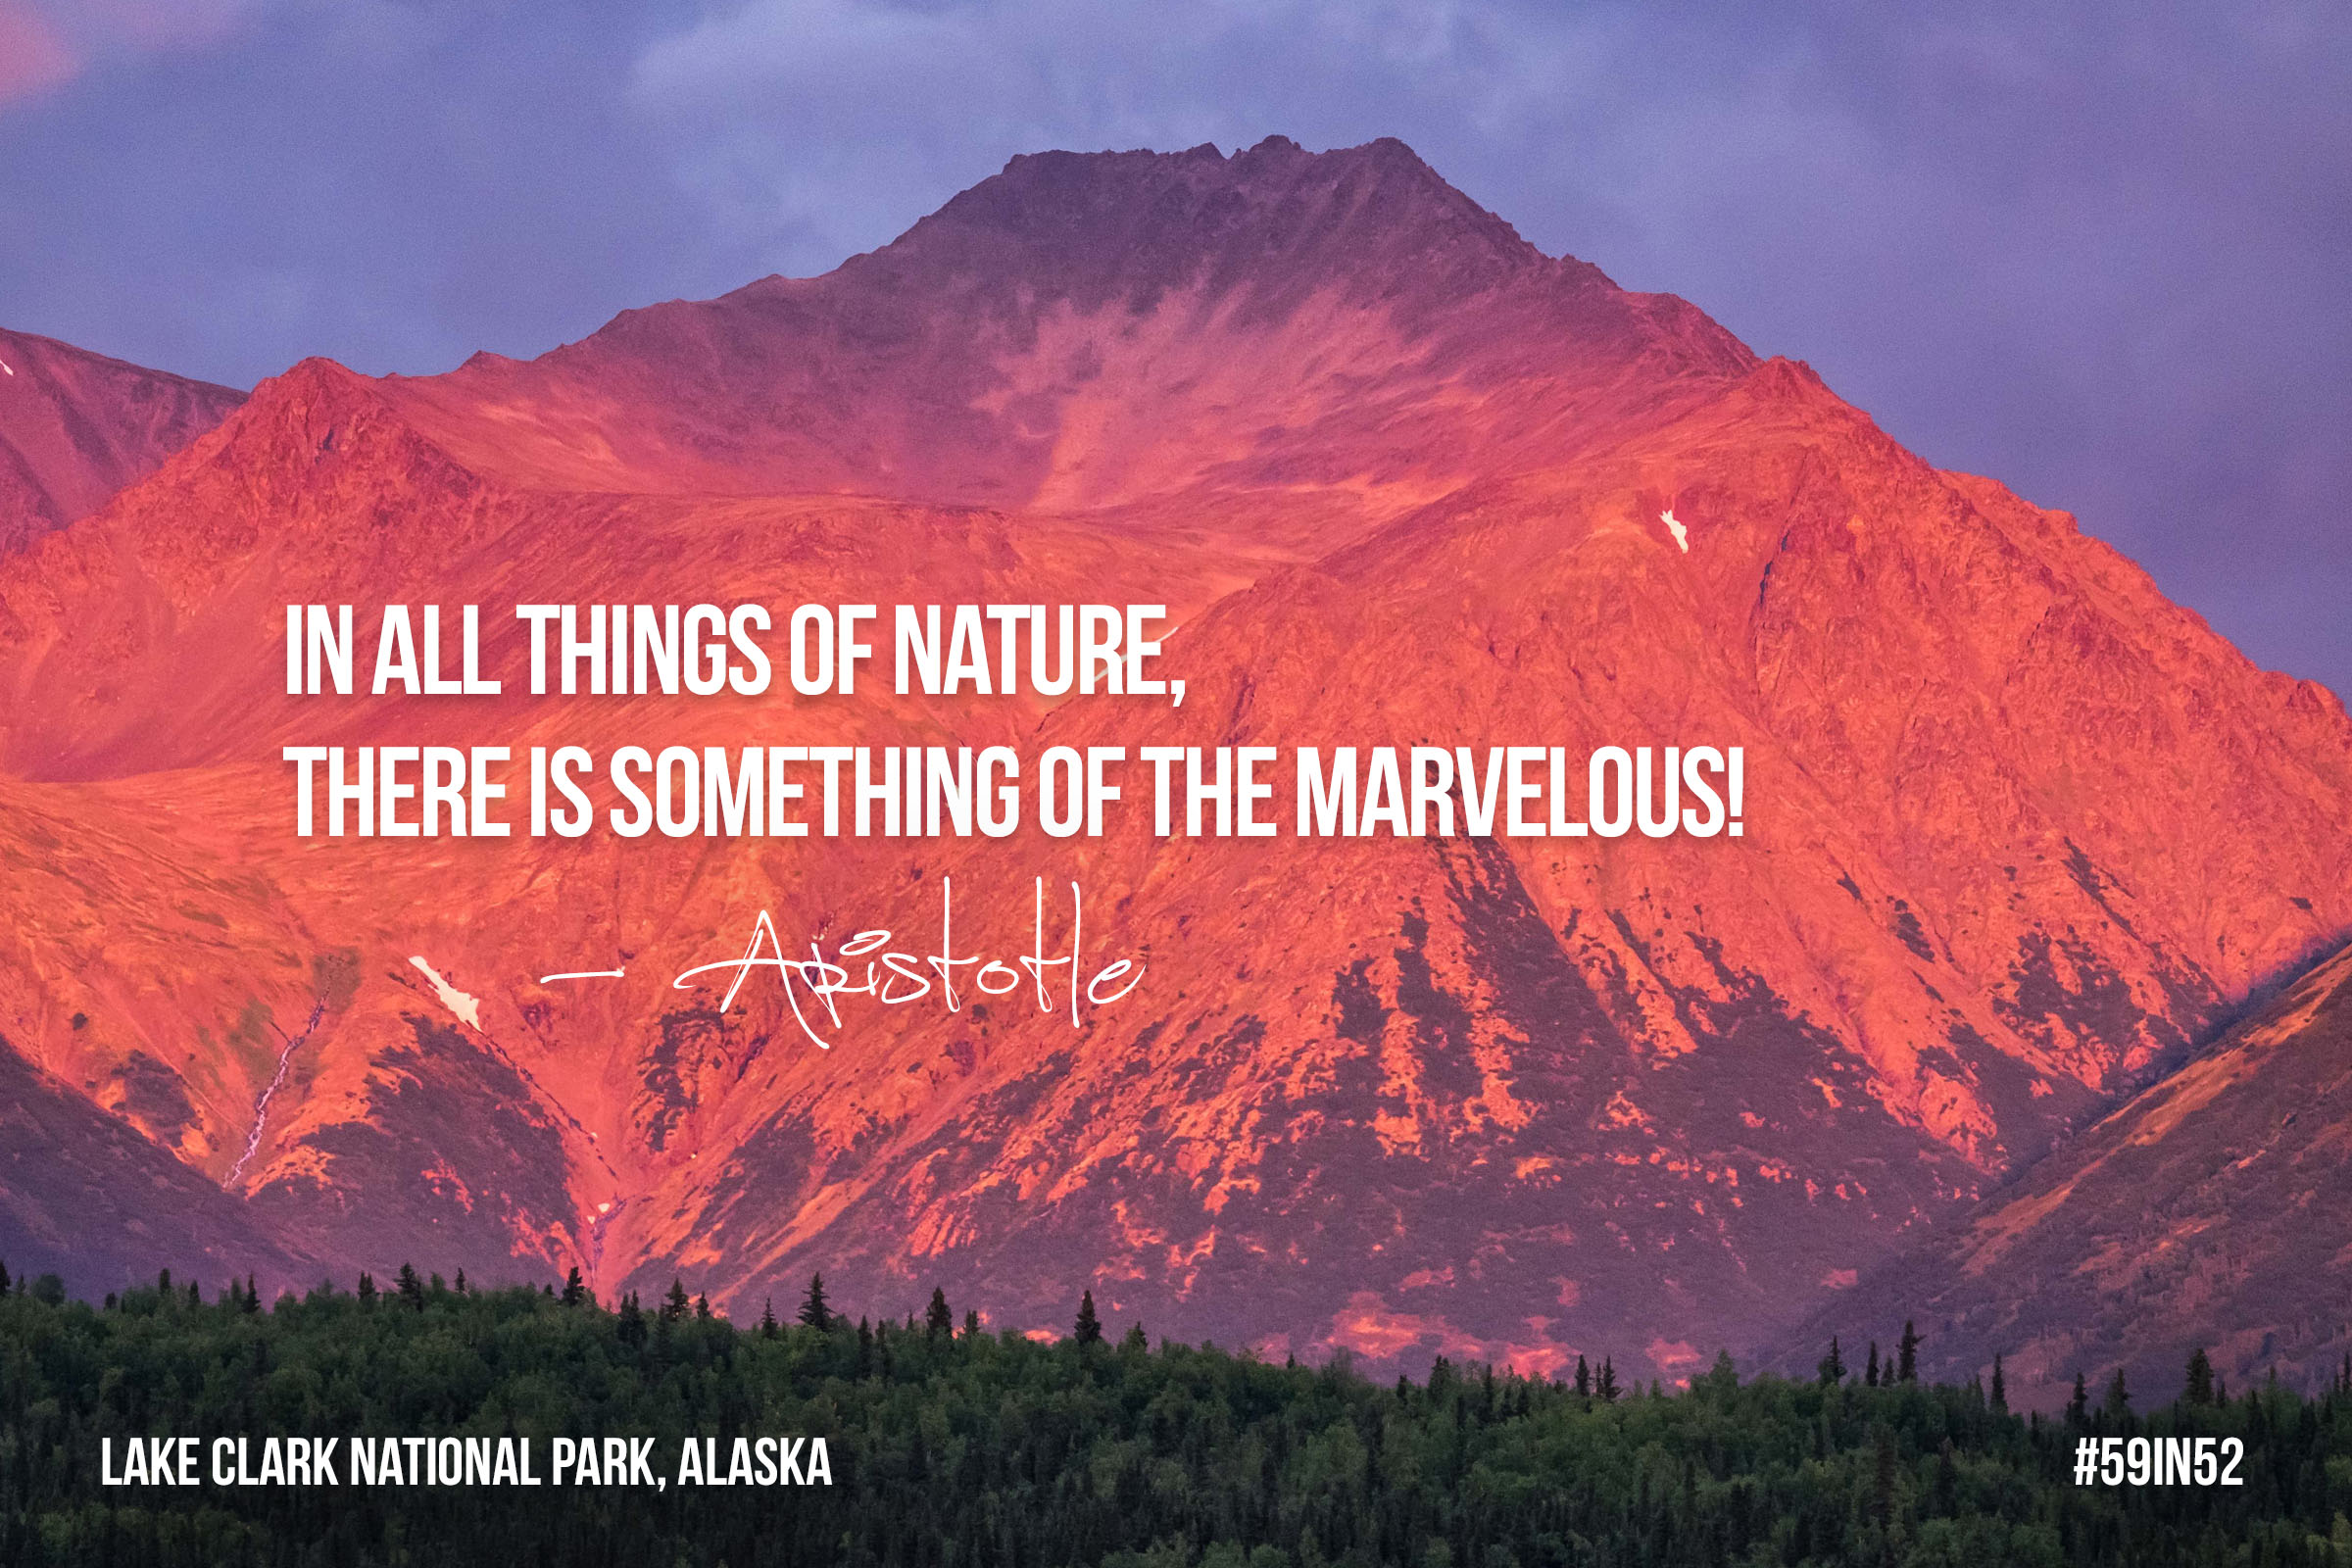 """In all things of nature, there is something of the marvelous!"" - Aristotle"